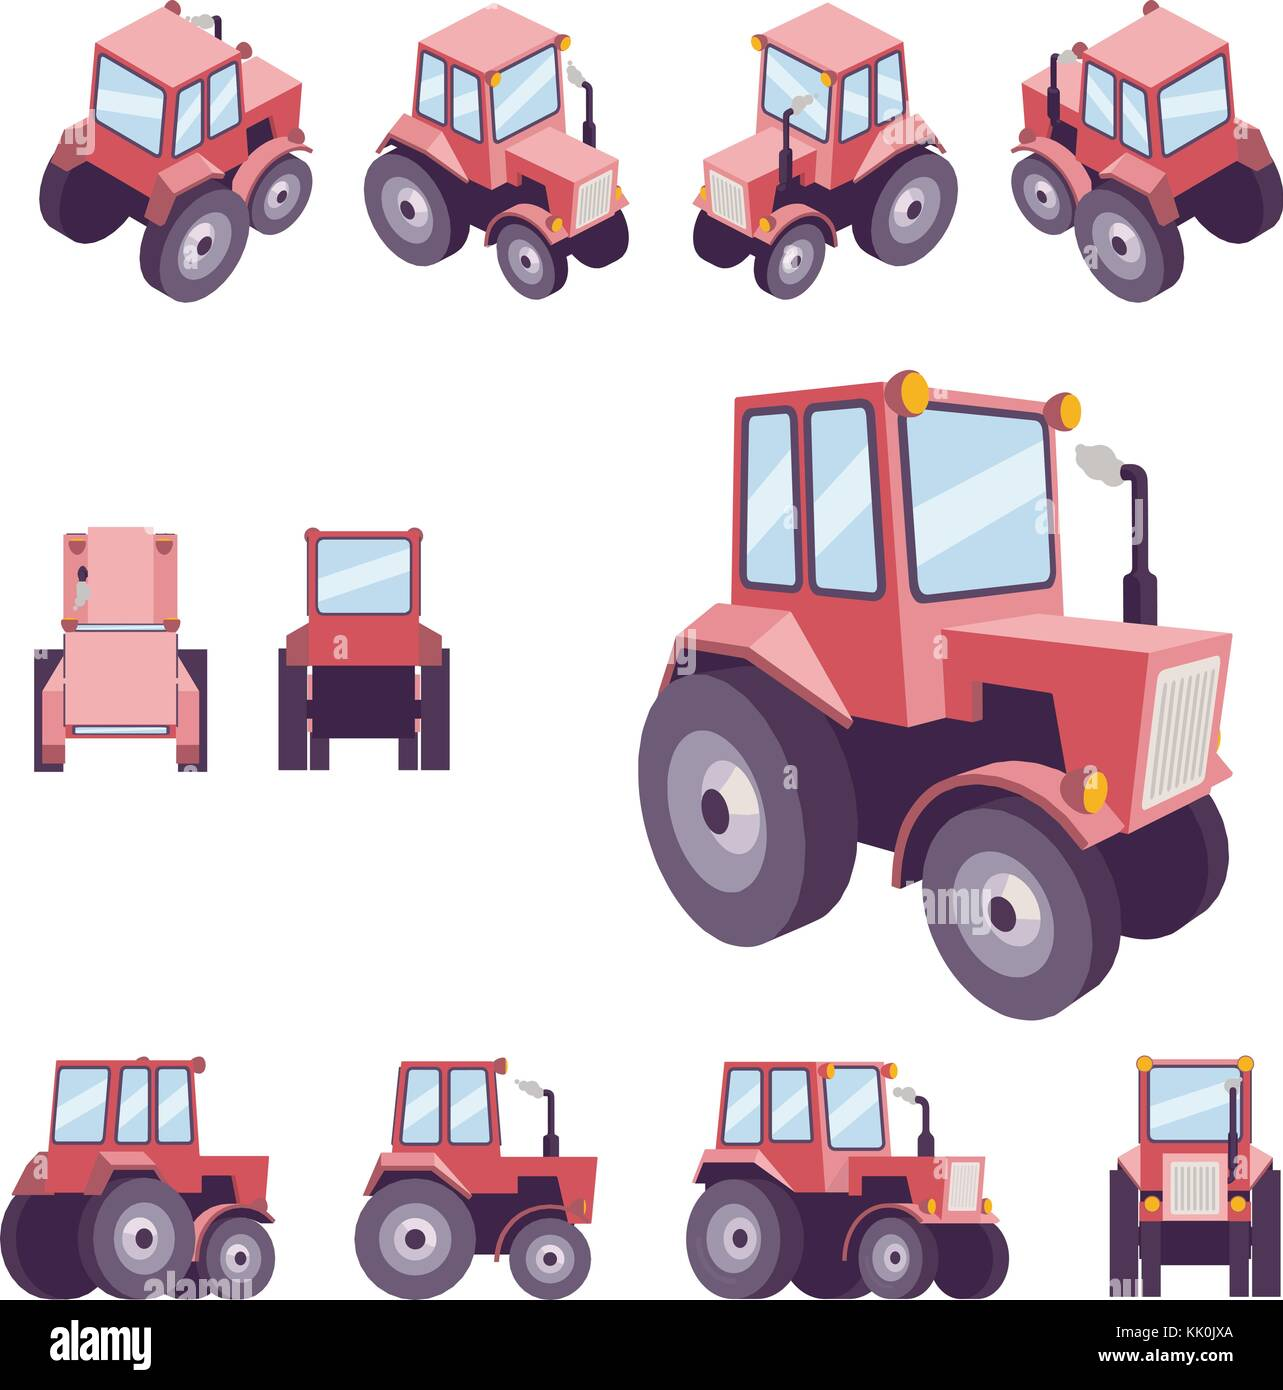 Red farm tractor, from different angles. Vehicle template vector isolated on white. View front, rear, side, top, - Stock Vector